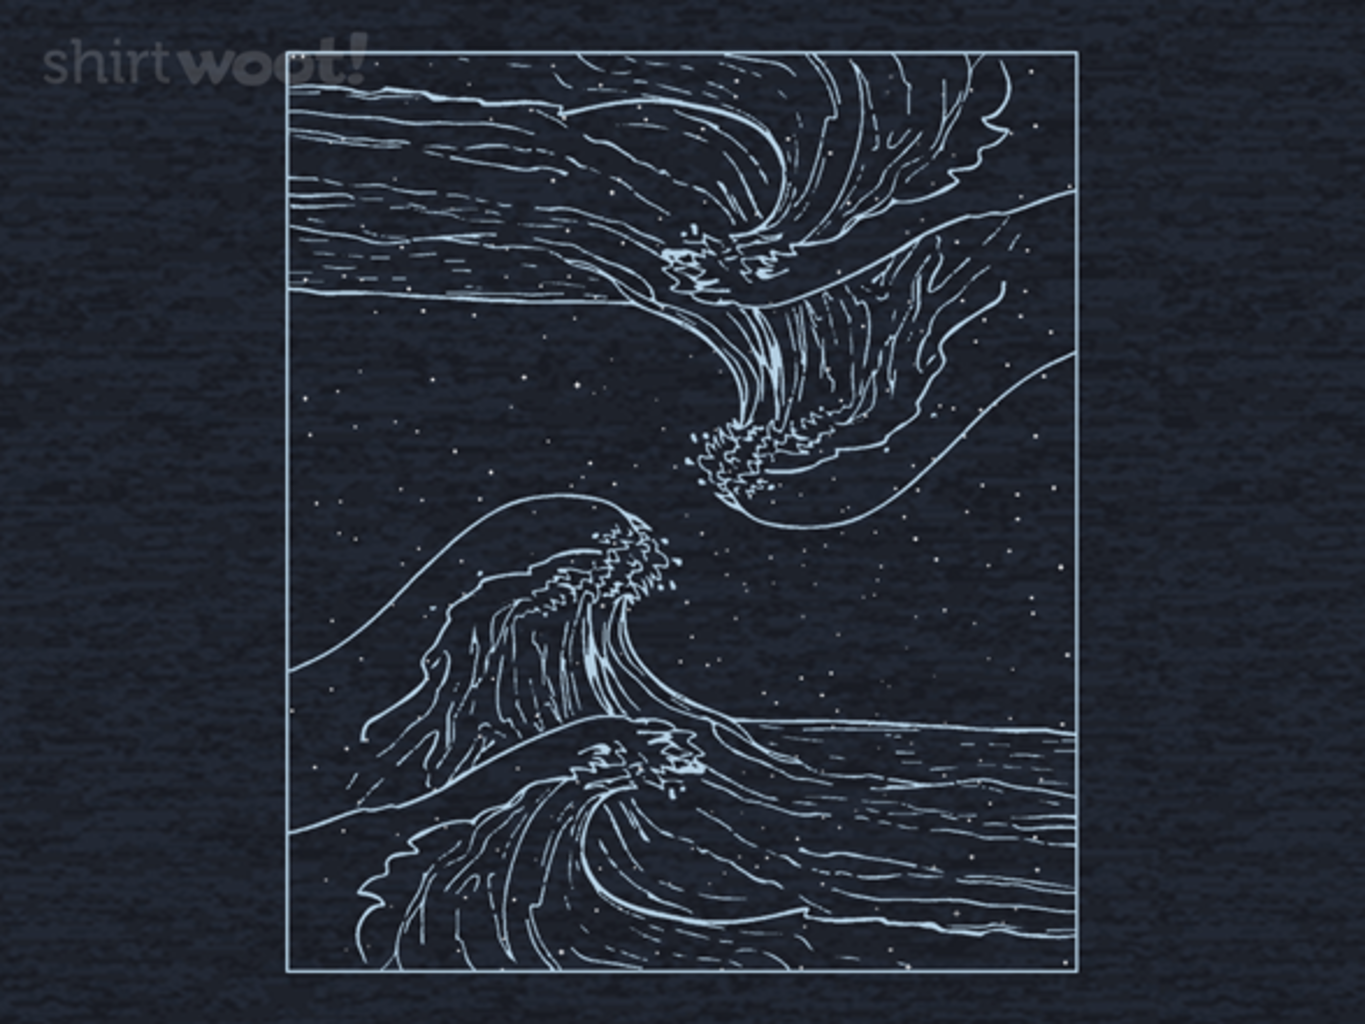 Woot!: Endless Waves